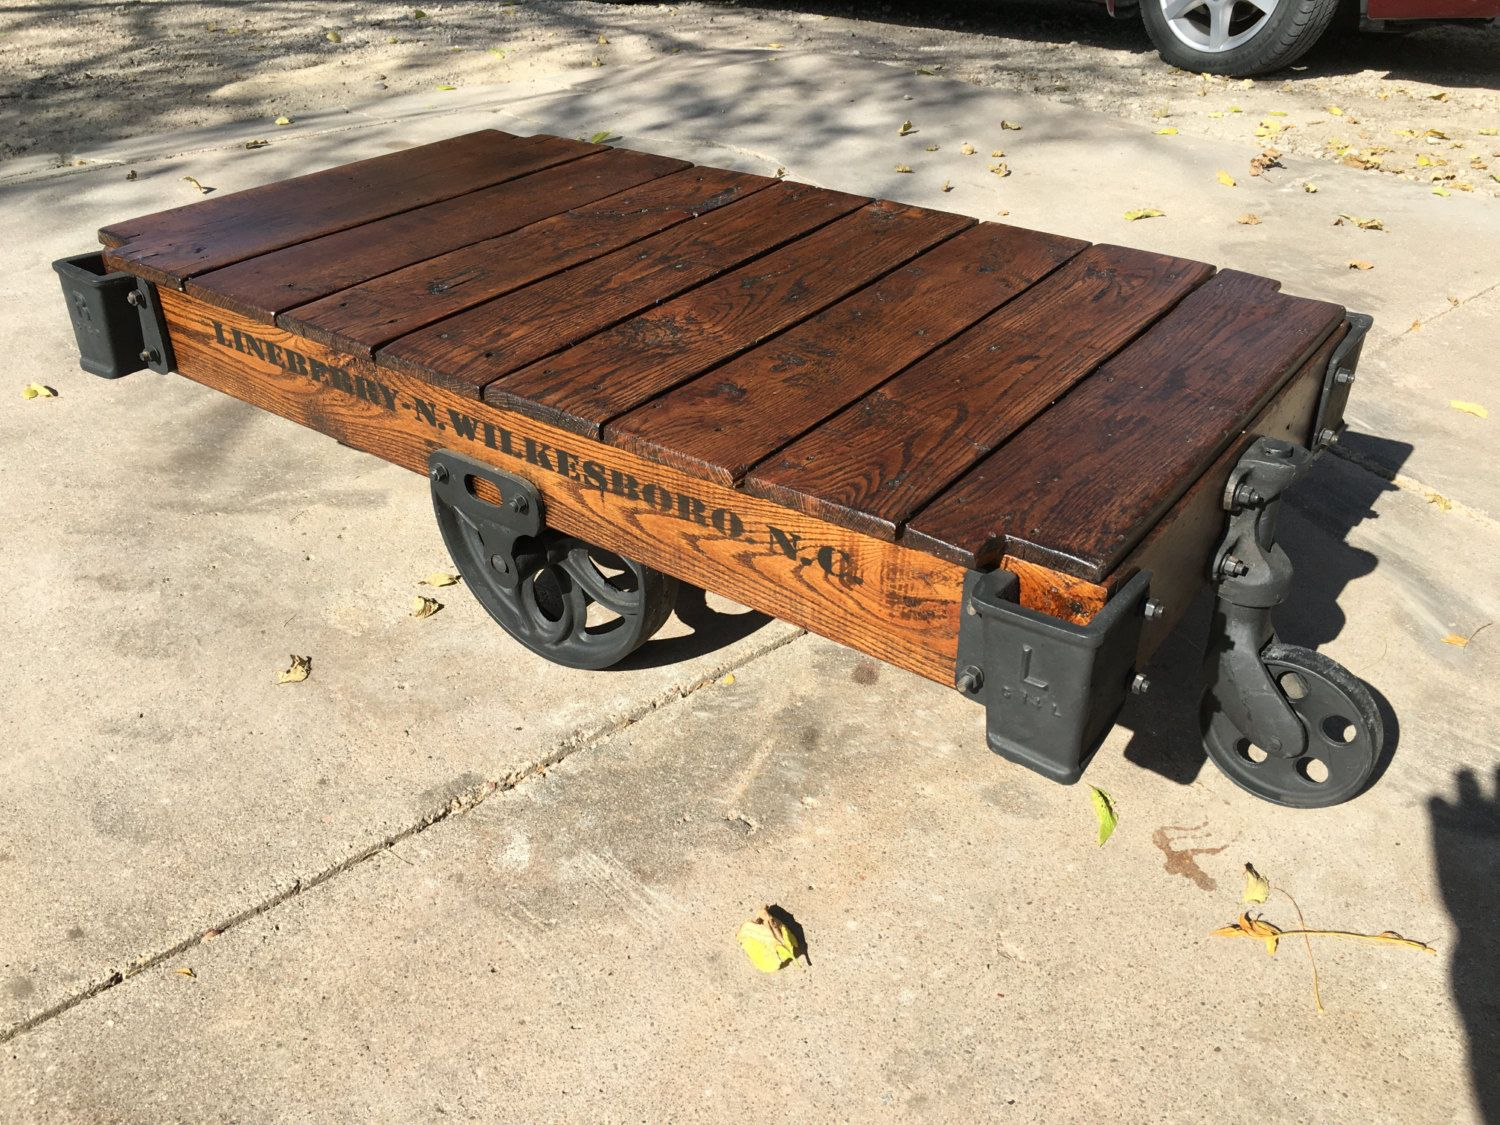 Lineberry Factory Cart / Railroad Cart Coffee Table by